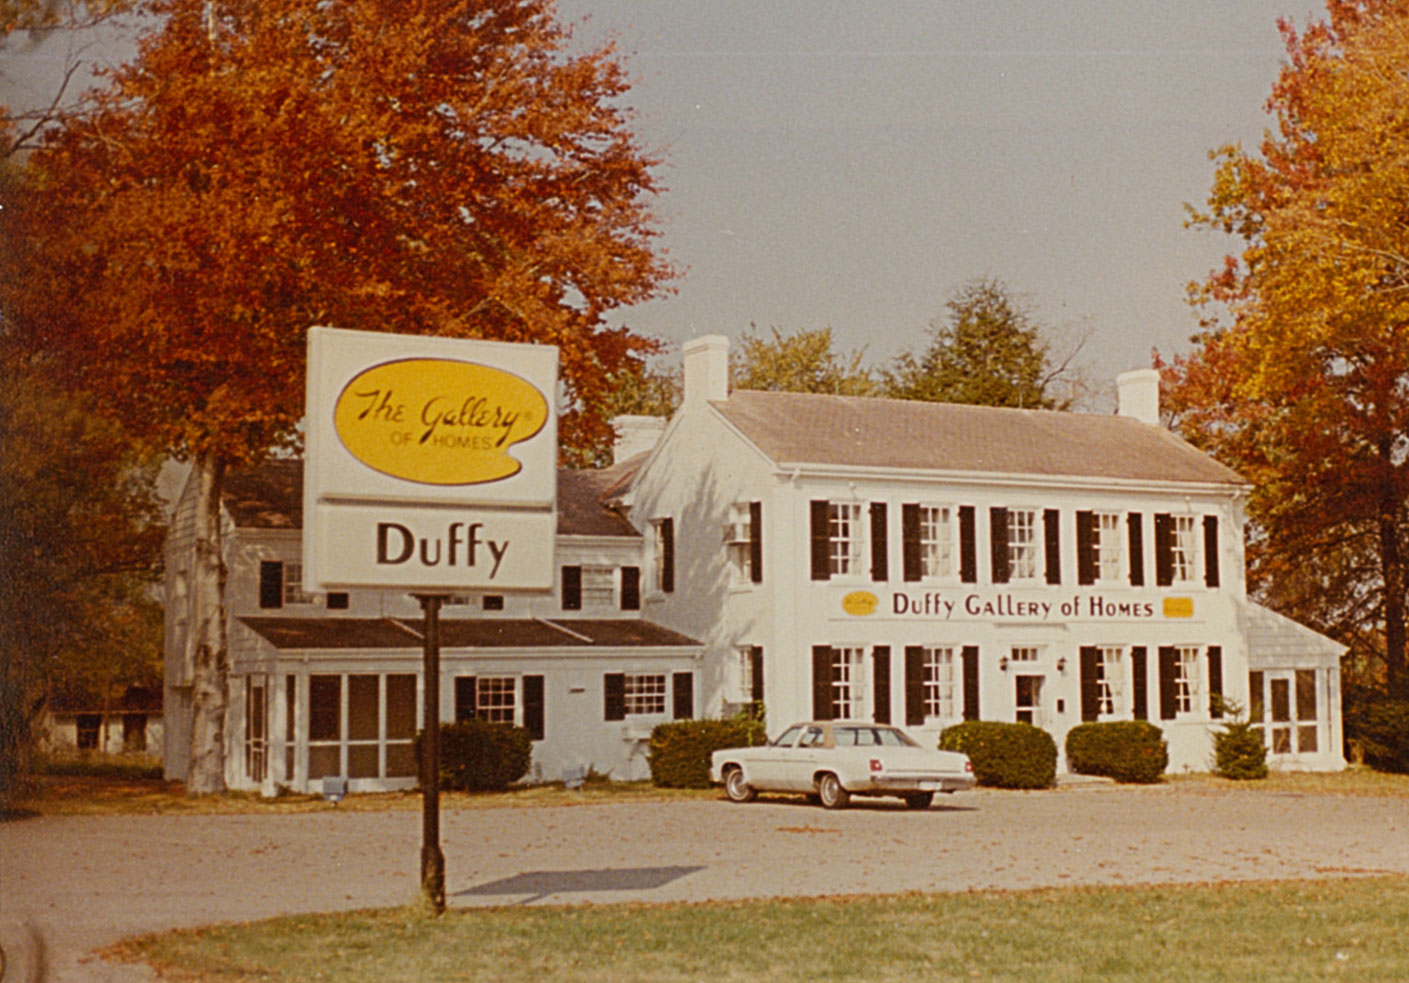 Duffy Gallery of Homes